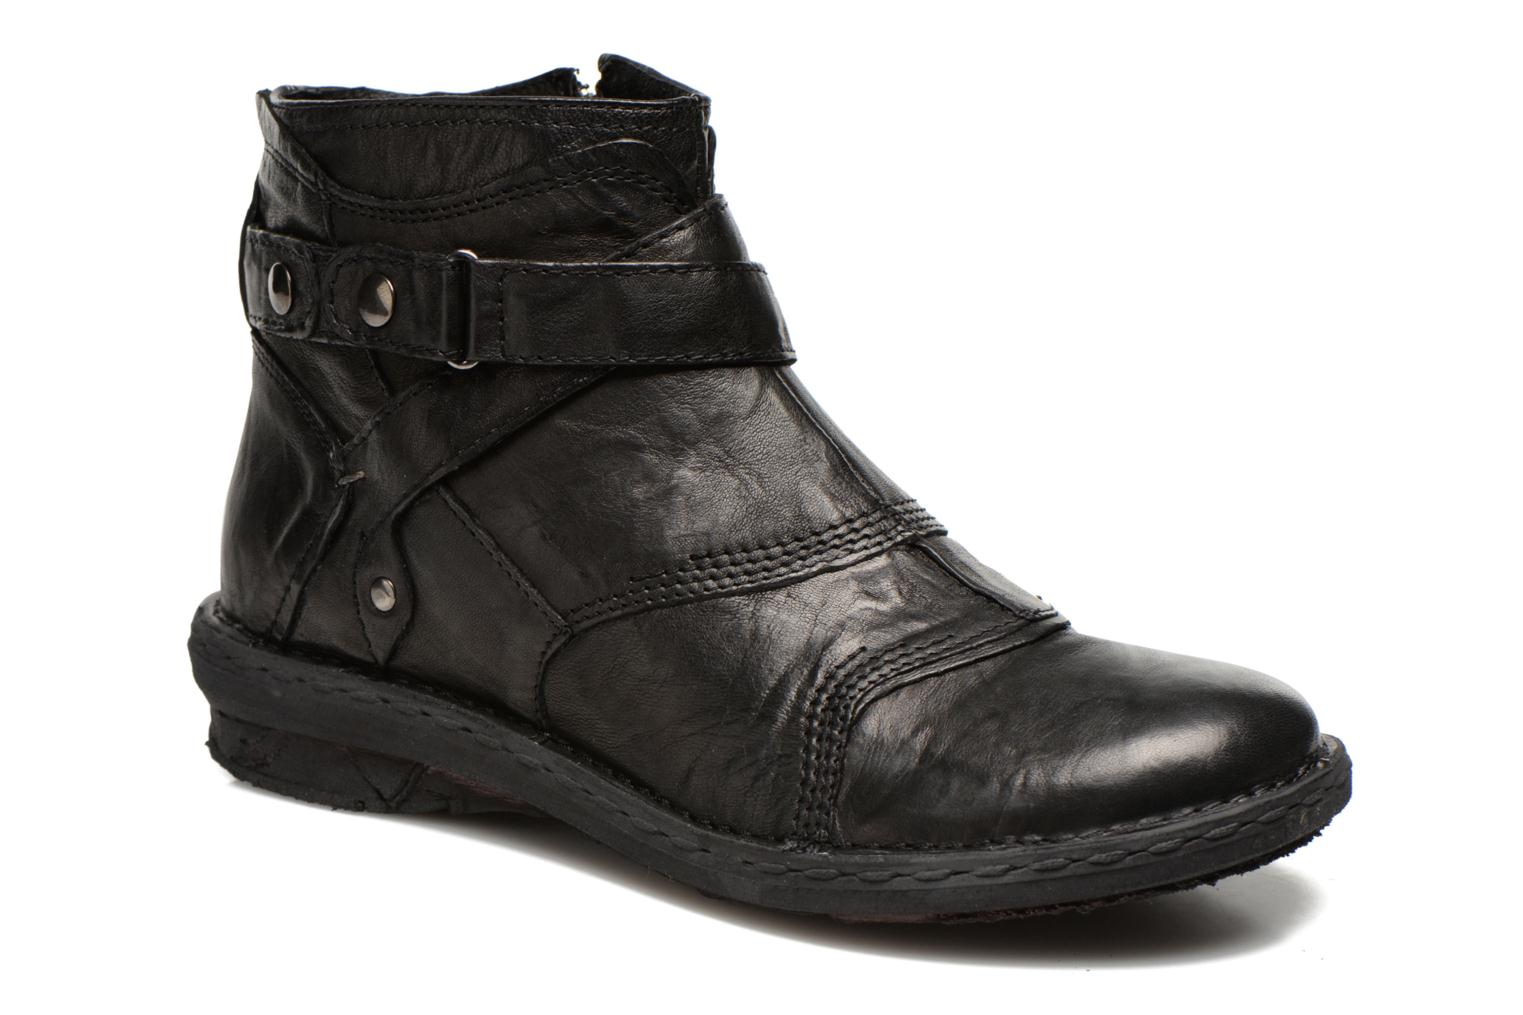 Marques Chaussure femme Khrio femme Sabras Rodeo nero